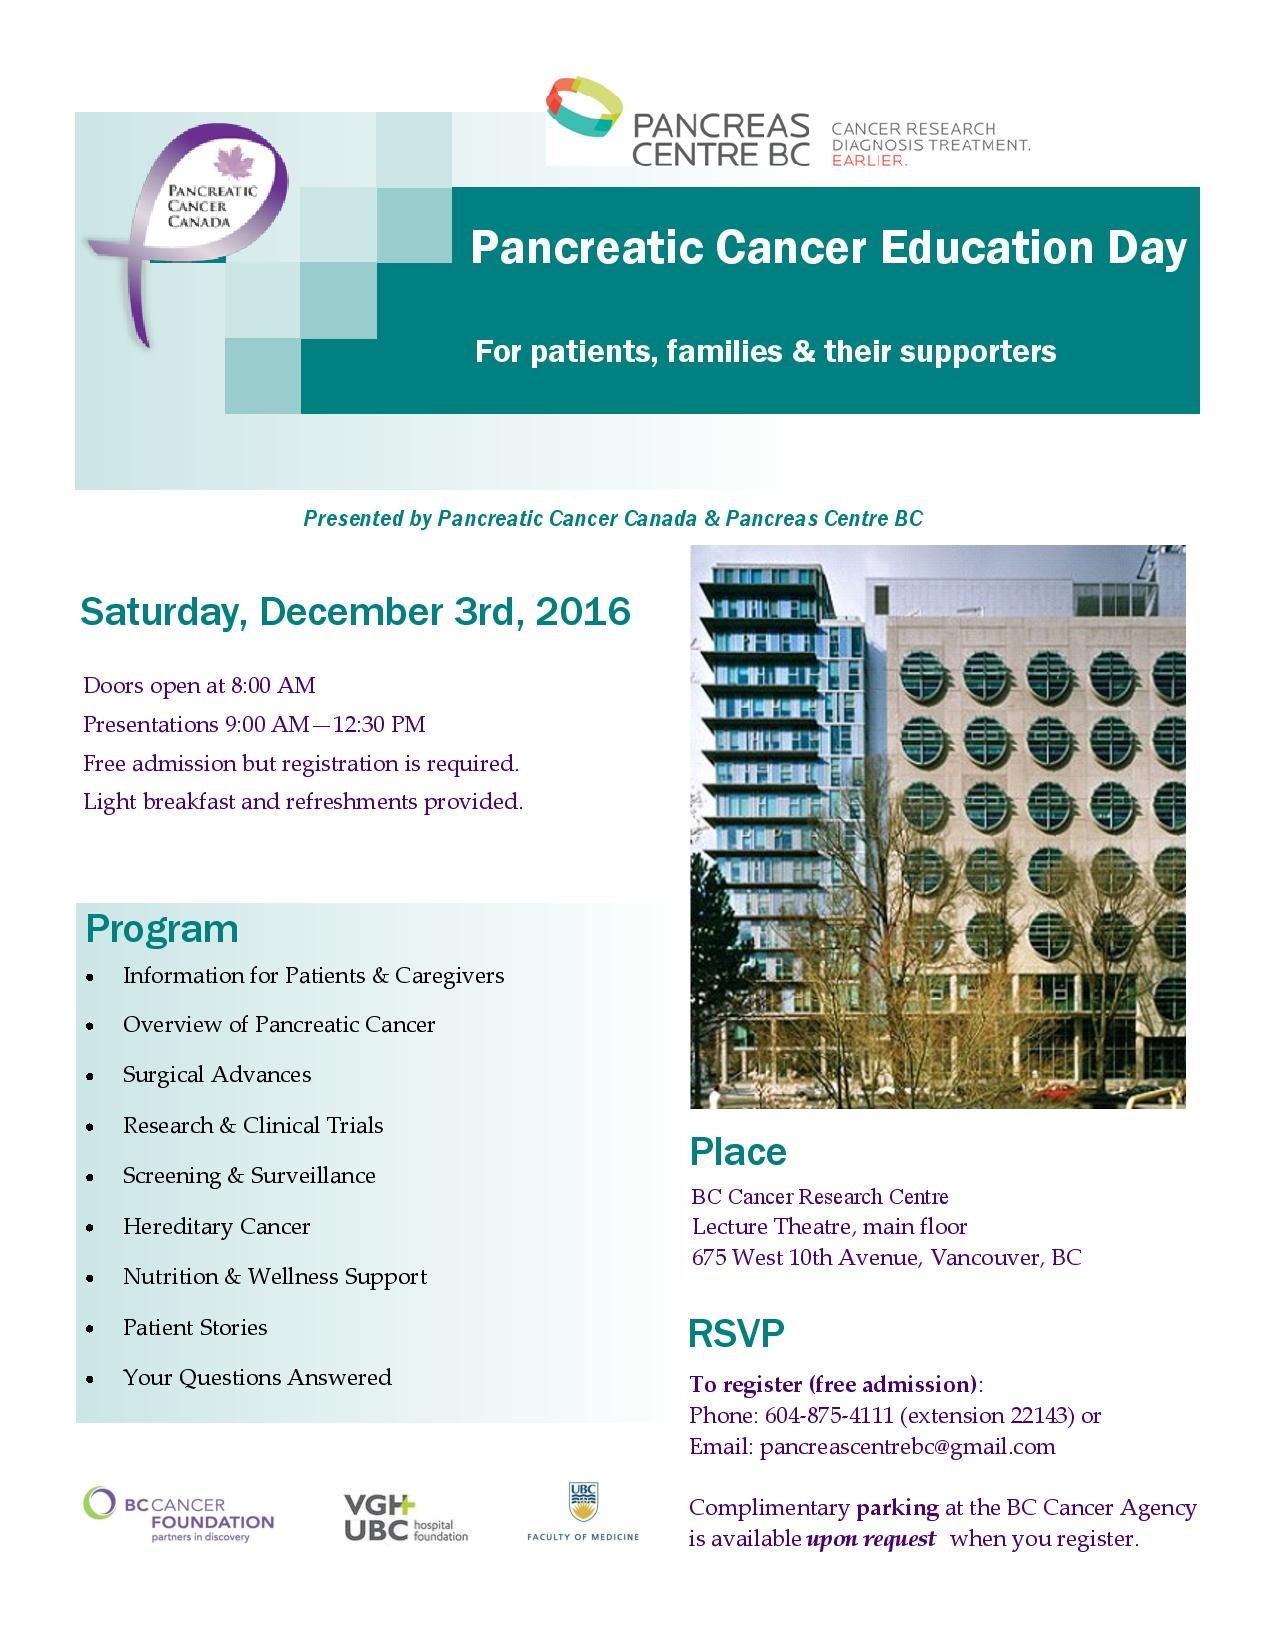 Pancreatic Cancer Education Day Poster